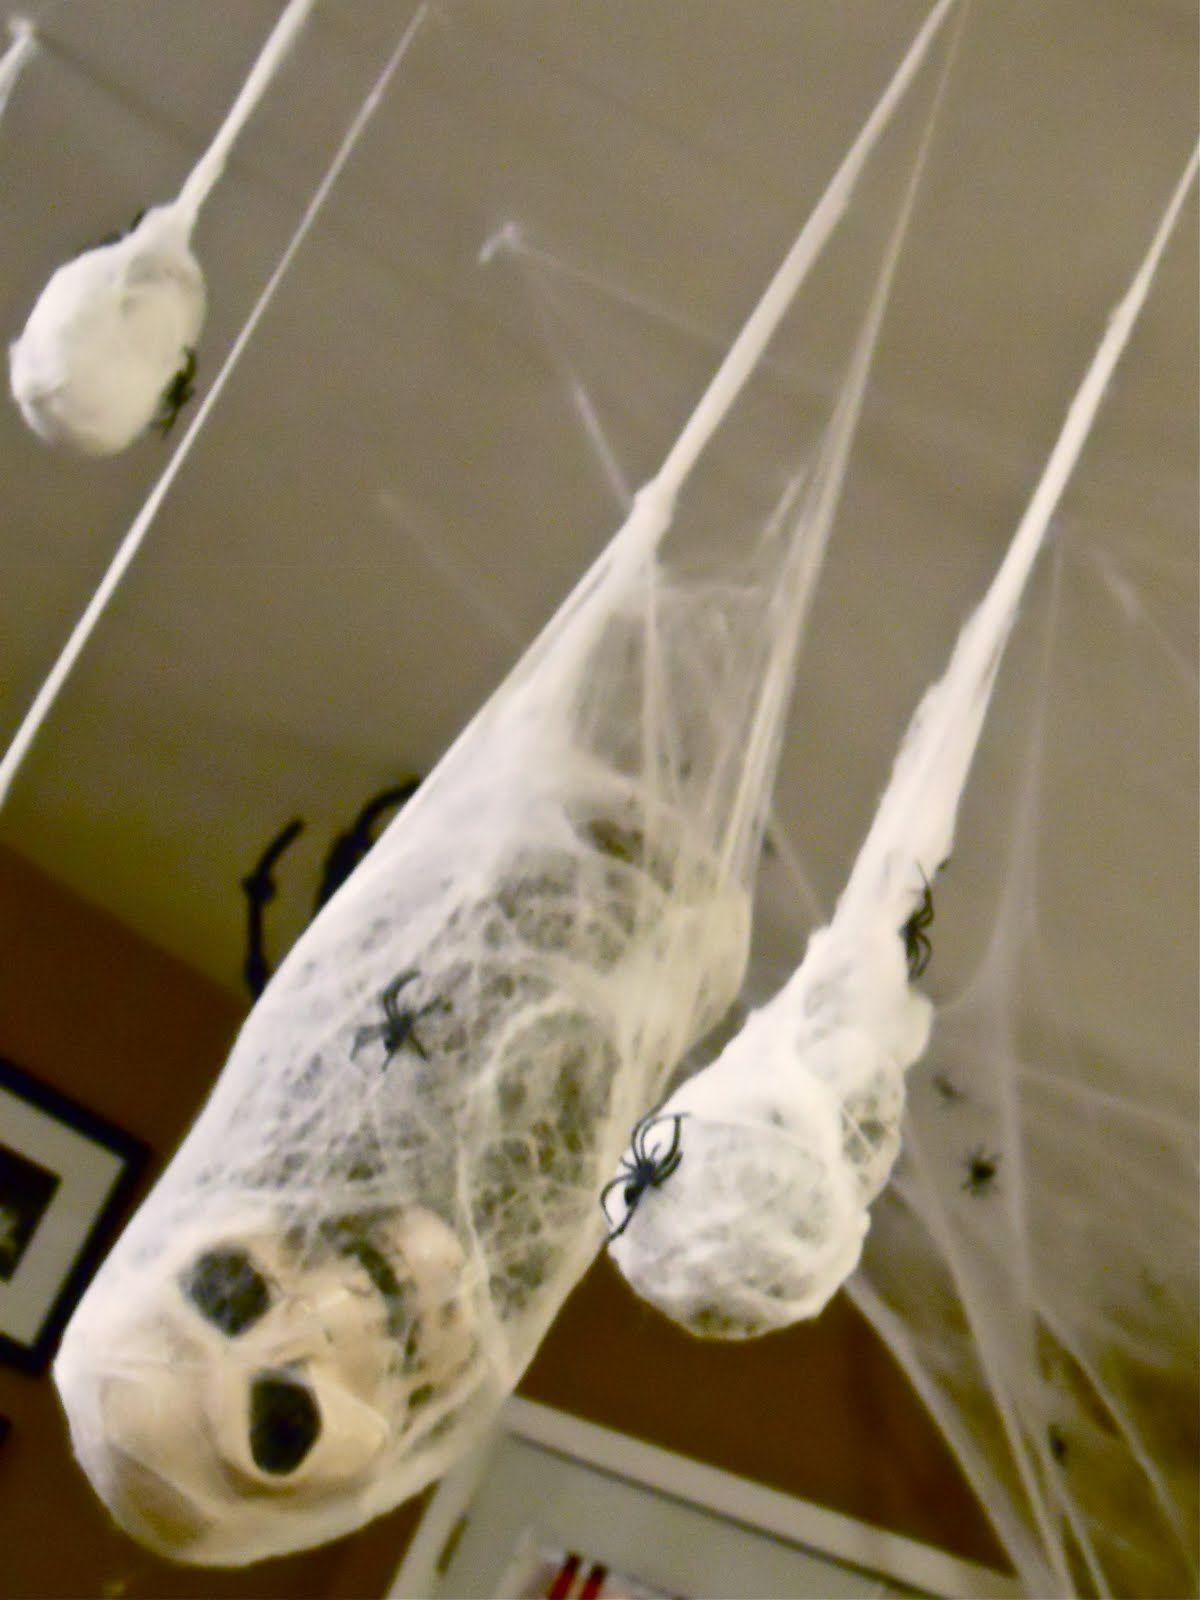 Scary halloween decoration ideas - Home Decorating Trends Homedit